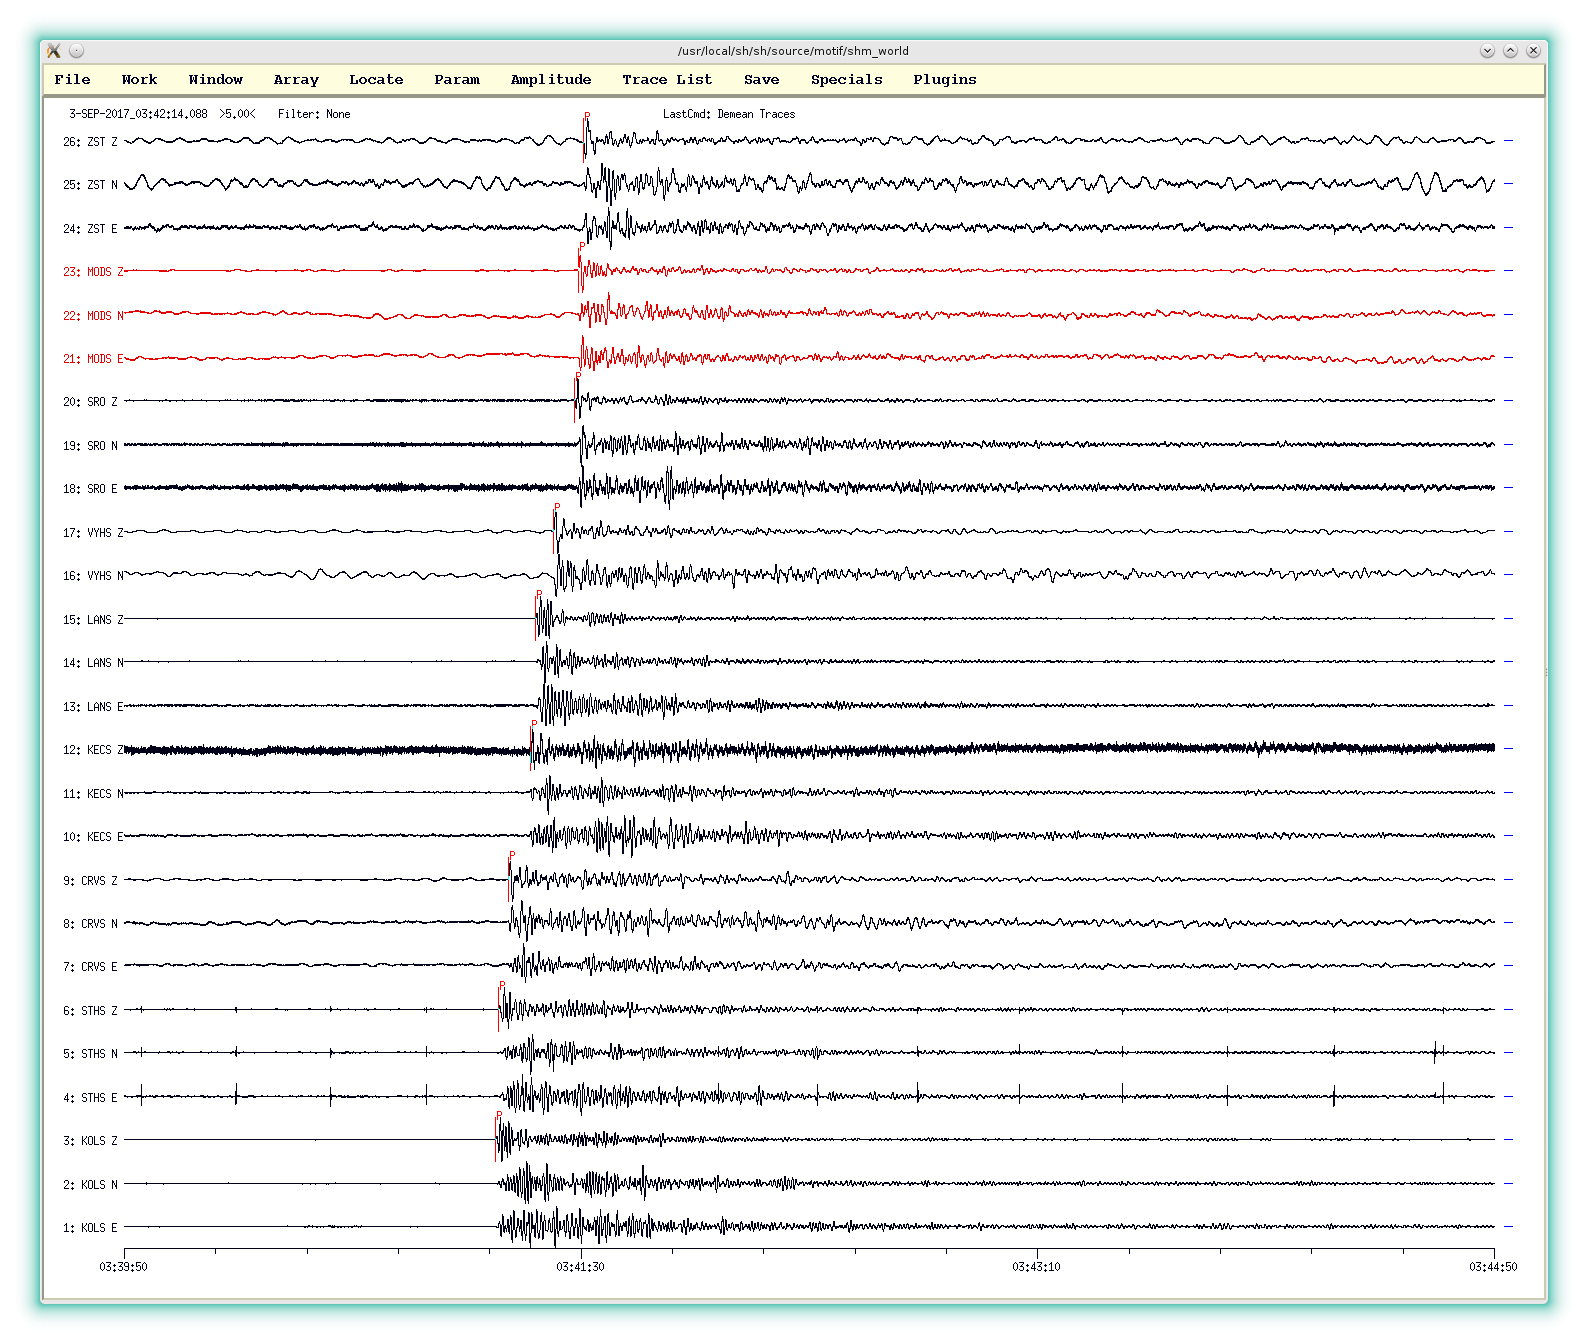 National Network of Seismic Stations recorded seismic waves